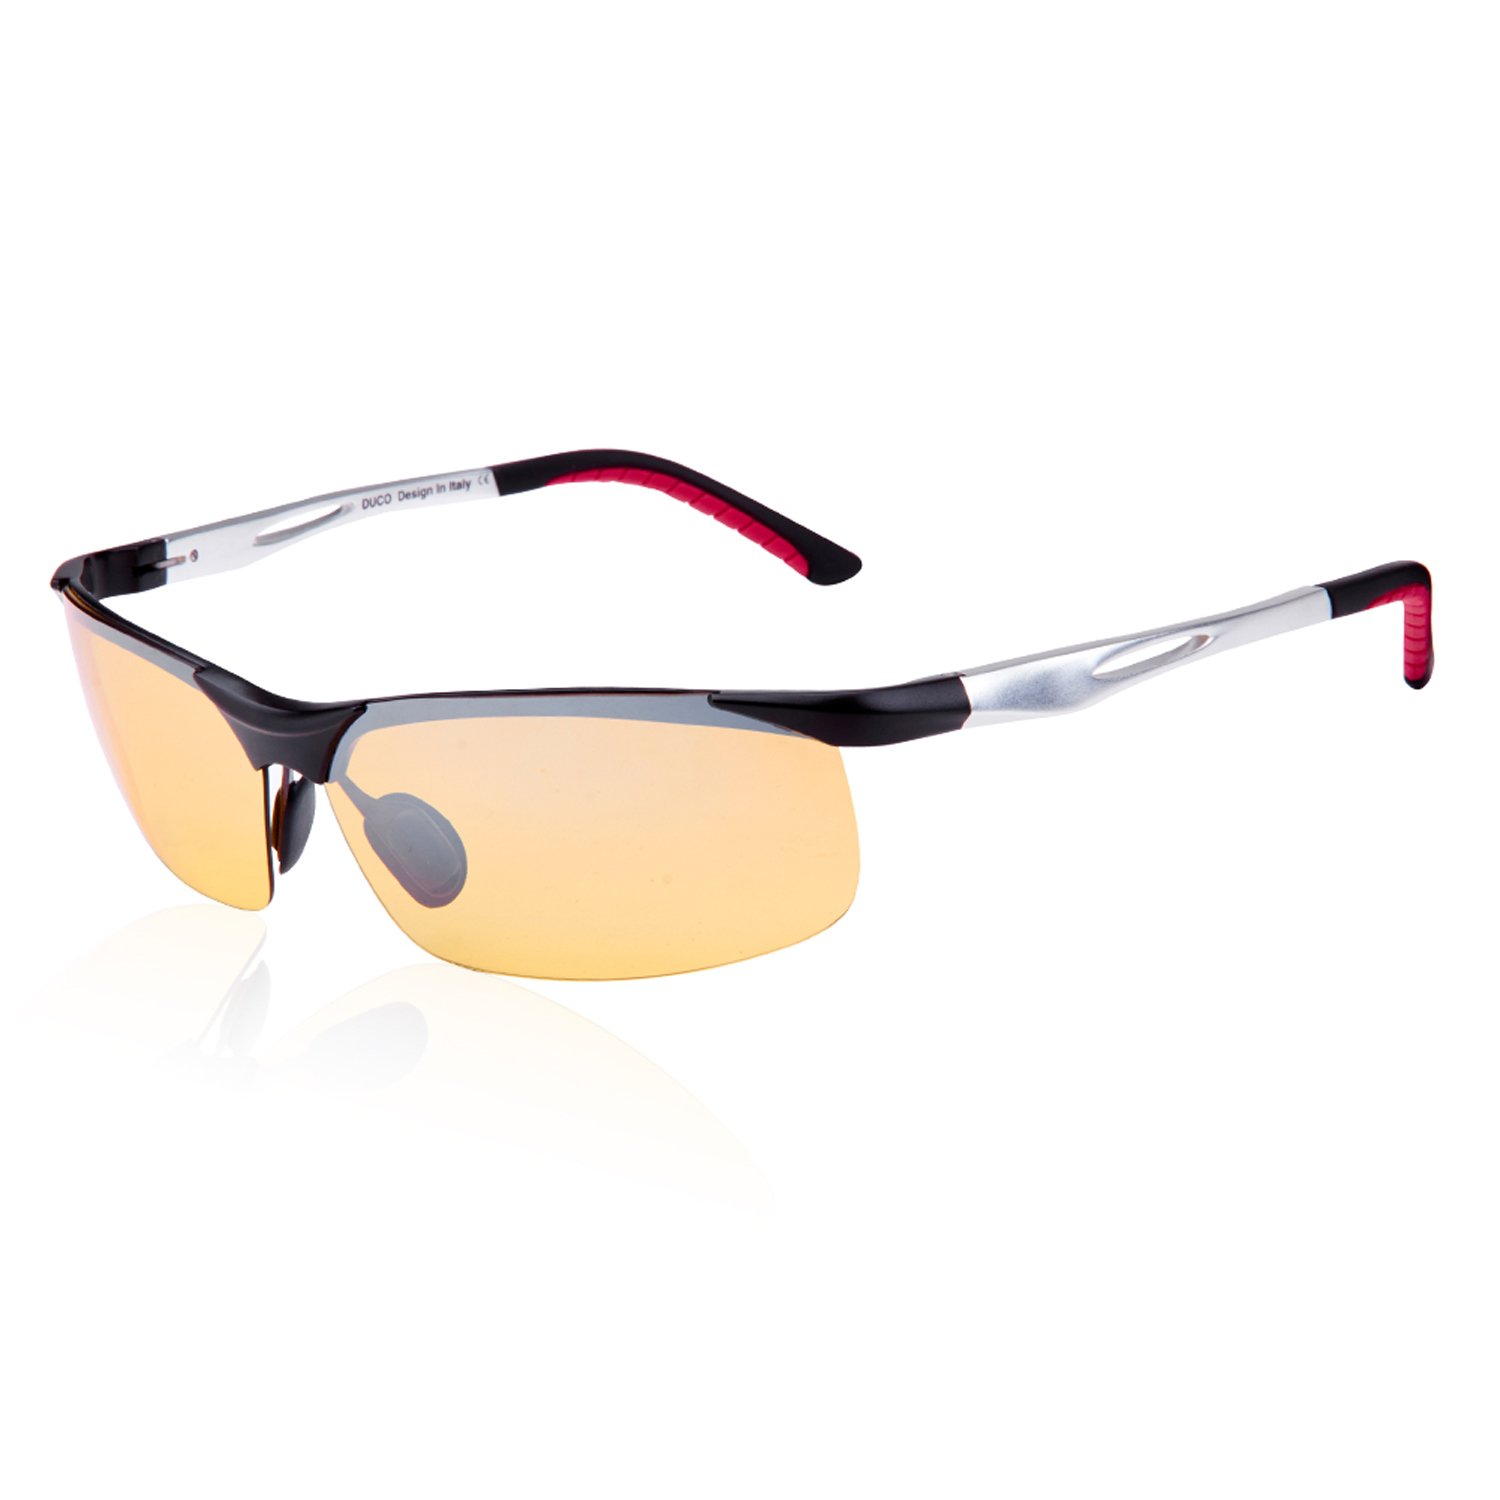 Duco Night-vision Glasses Anti-glare Driving Eyewear Polarized 2181